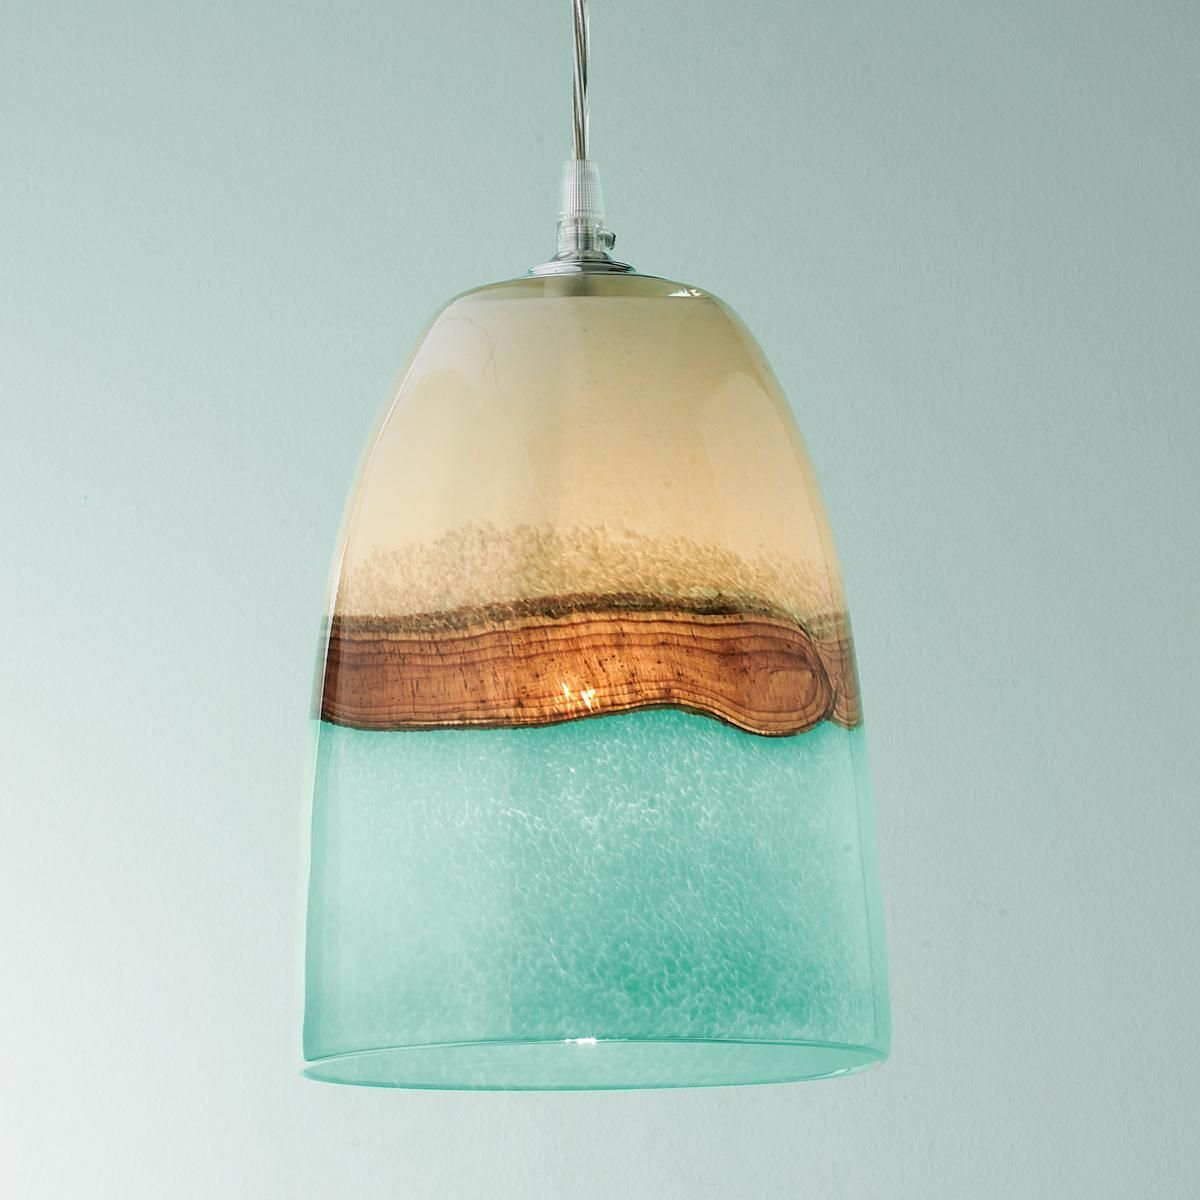 Strata Art Glass Pendant Light | Cream art, Glass pendants and ...